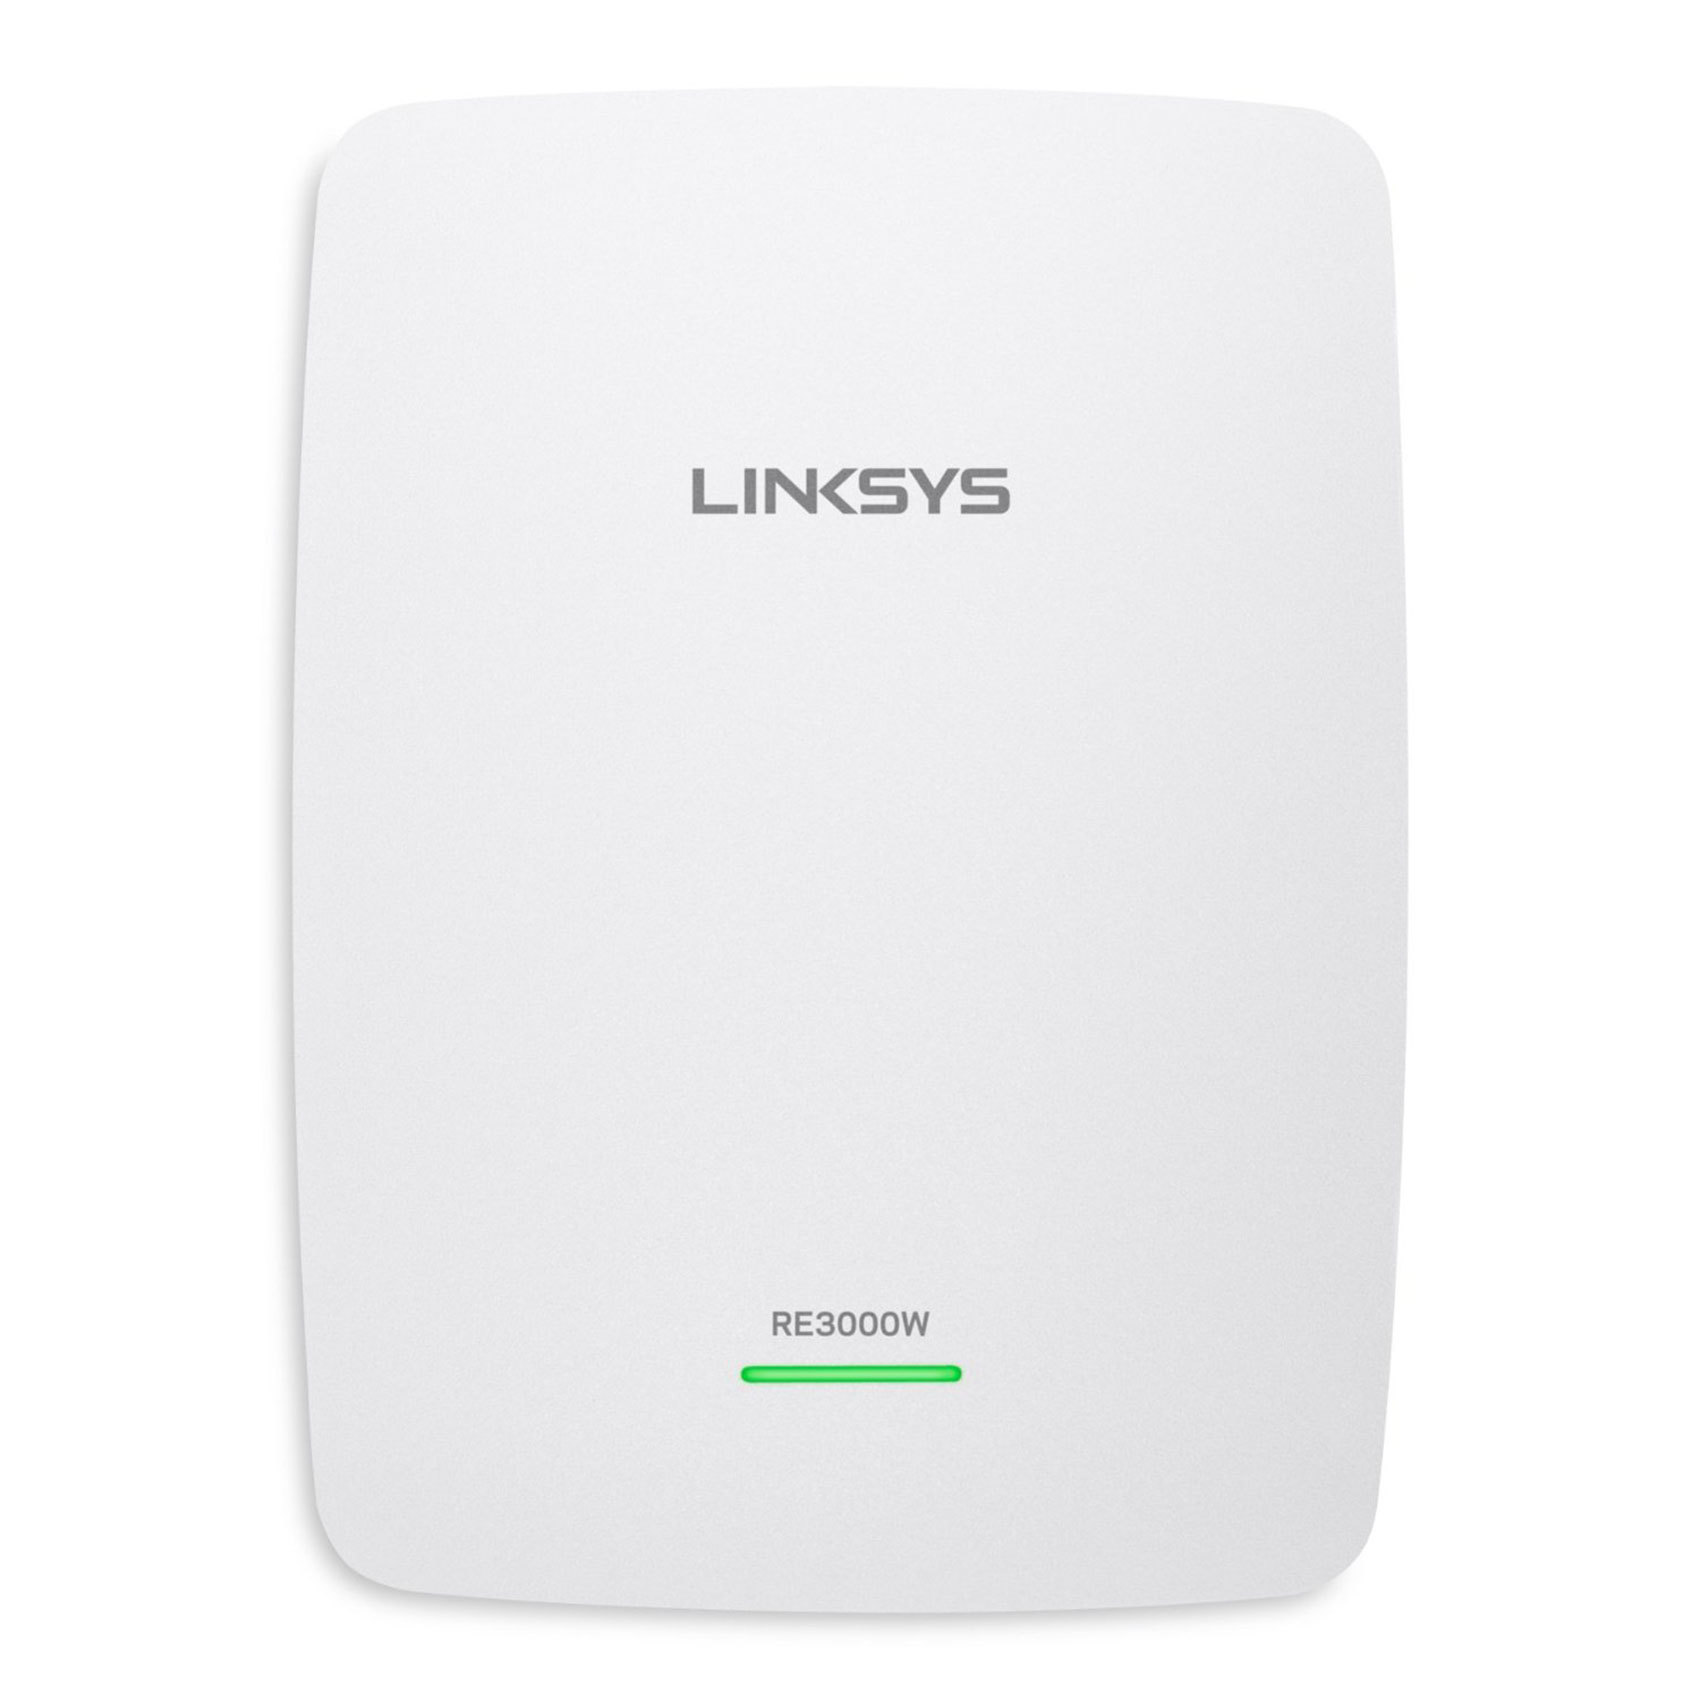 LINKSYS W/L RE N300 RE3000